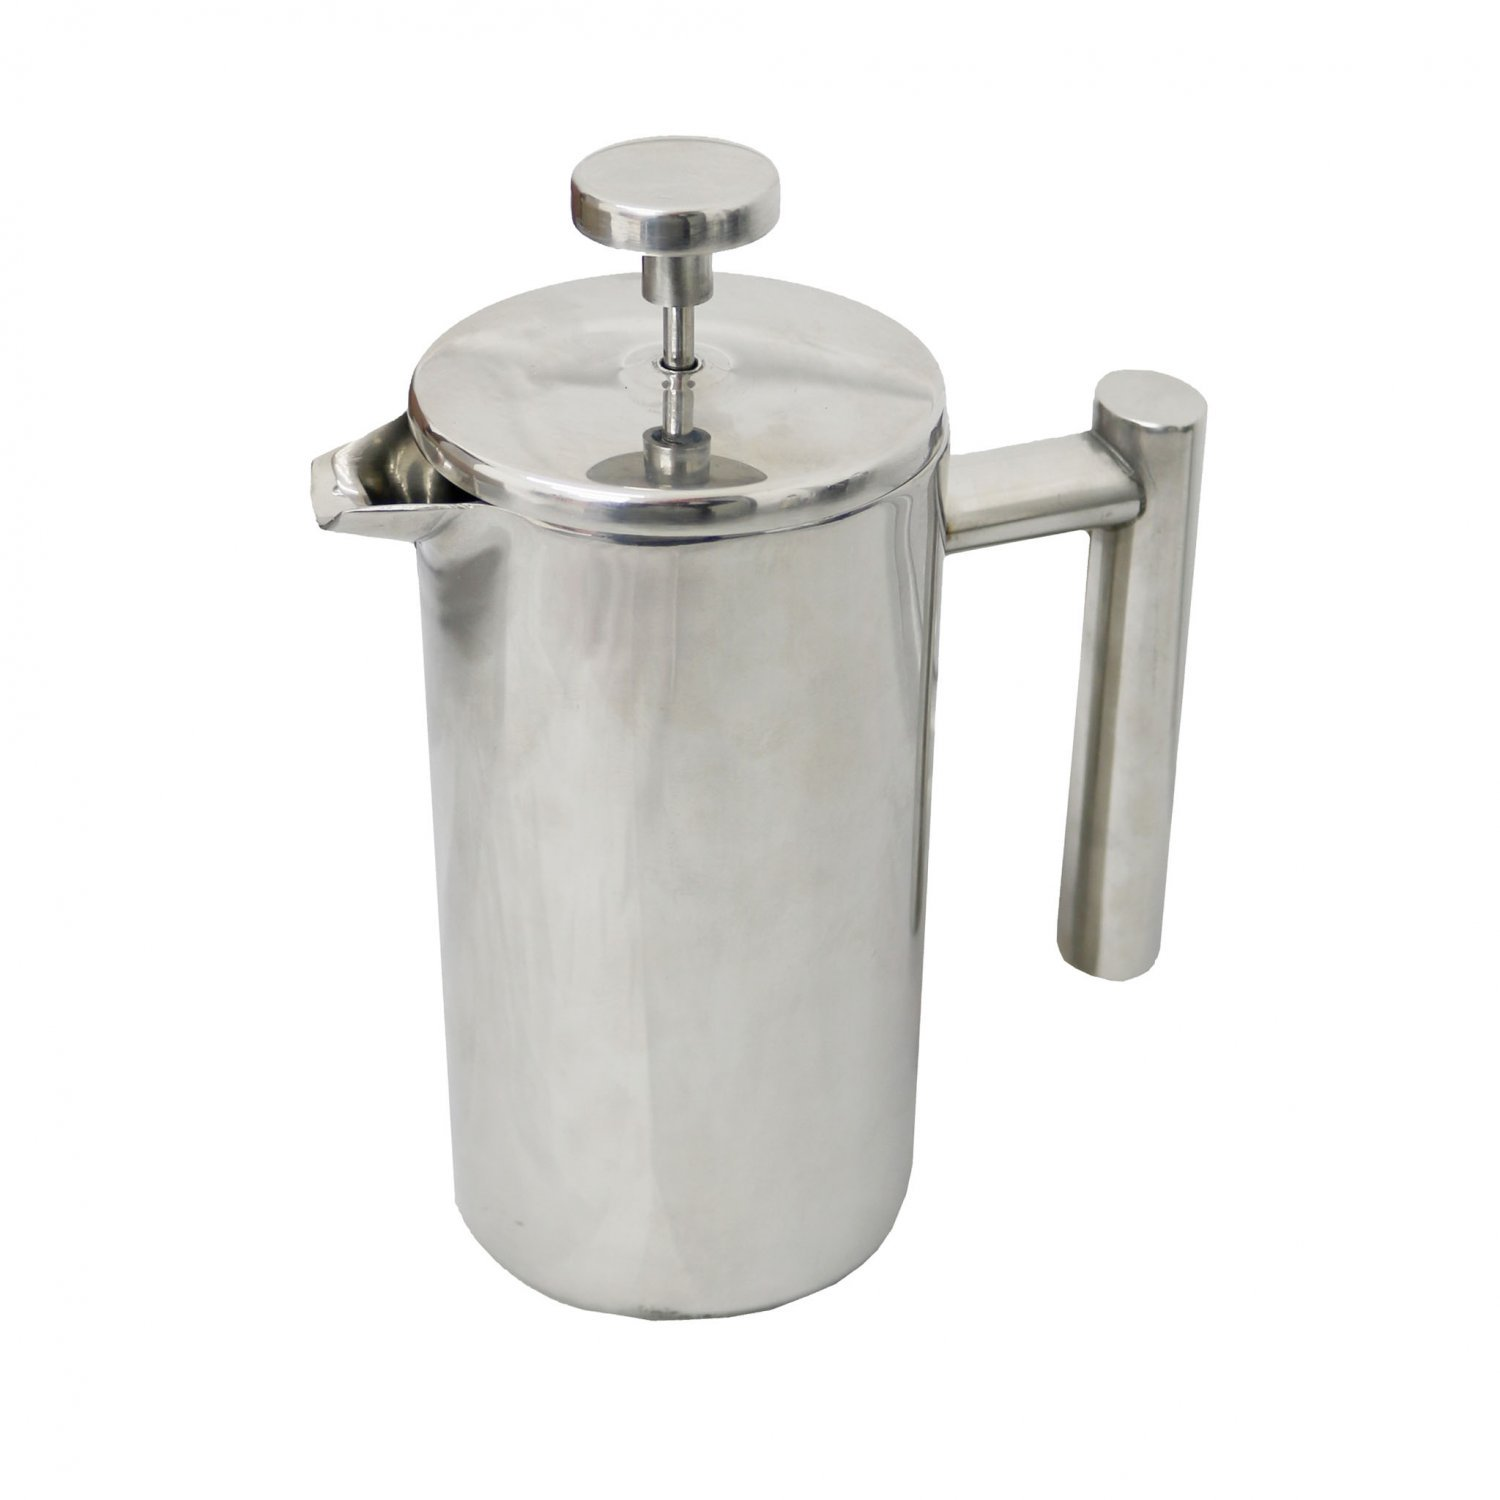 3 Cup 350ml Stainless Steel Cafetiere French Press Coffee Maker